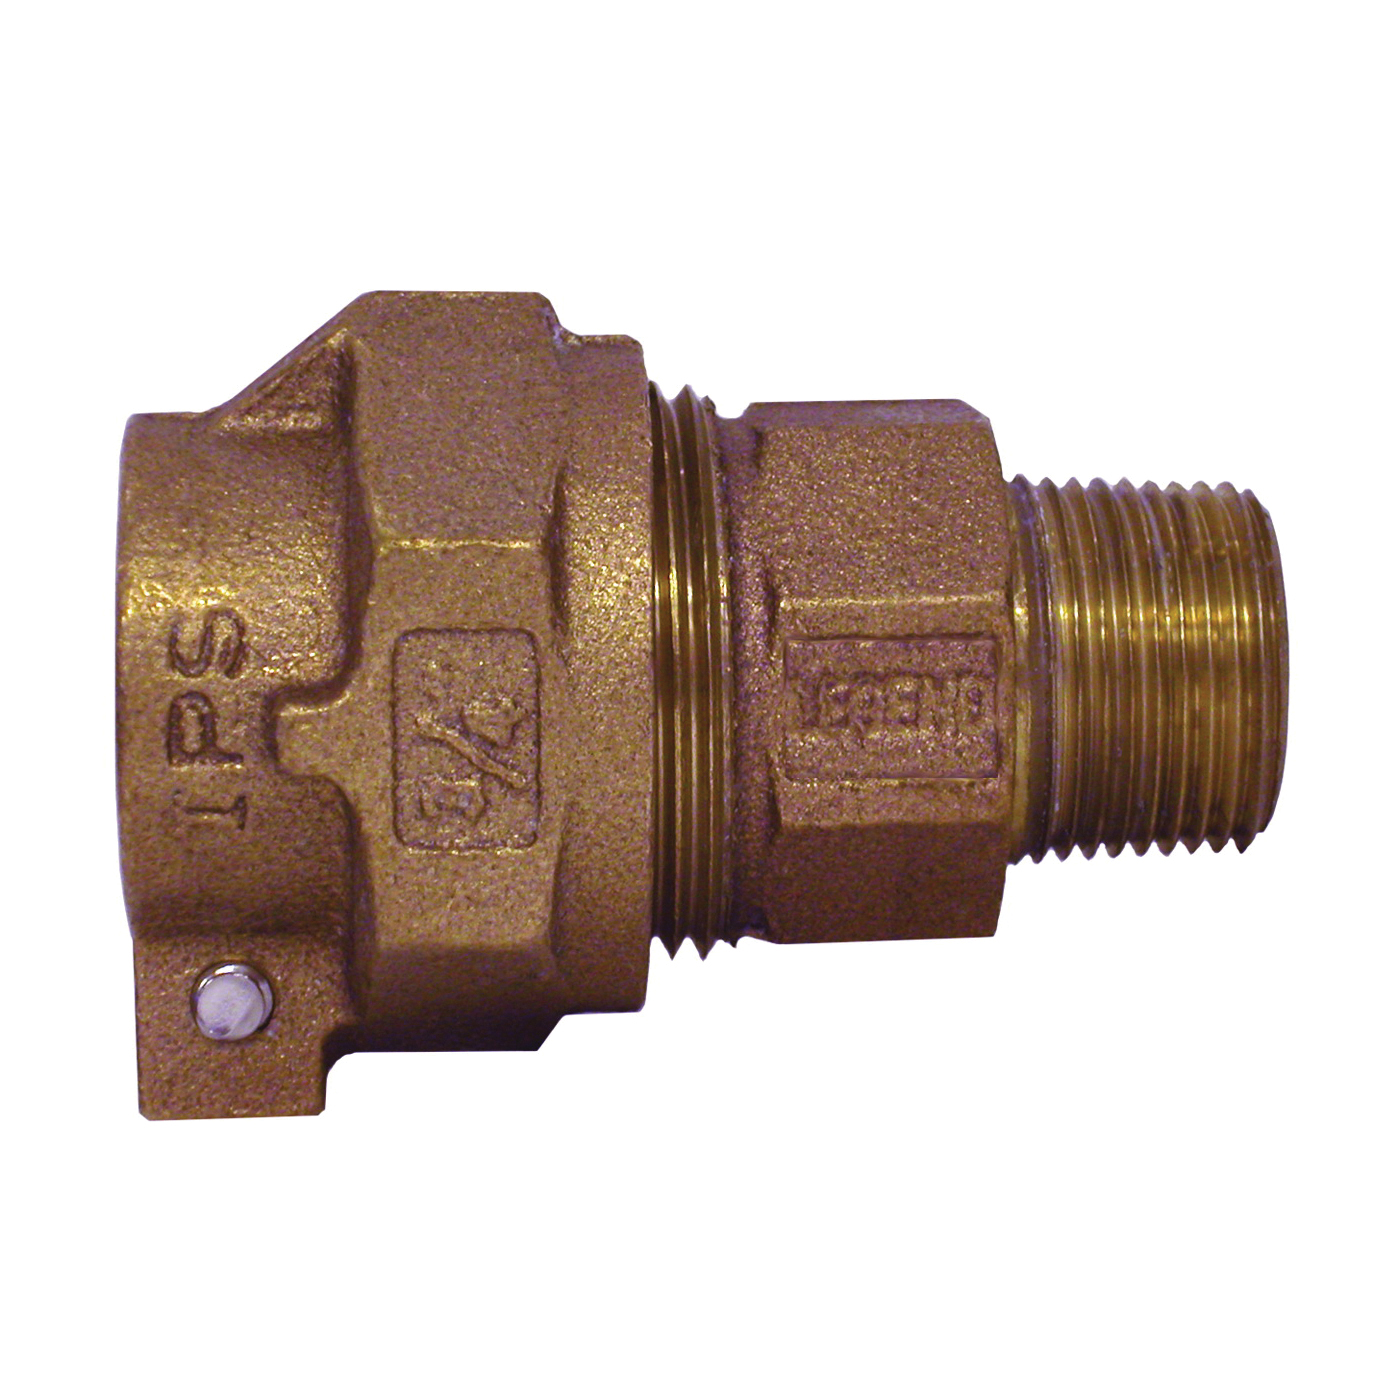 Picture of Legend T-4320NL Series 313-234NL Pipe Coupler, 3/4 in